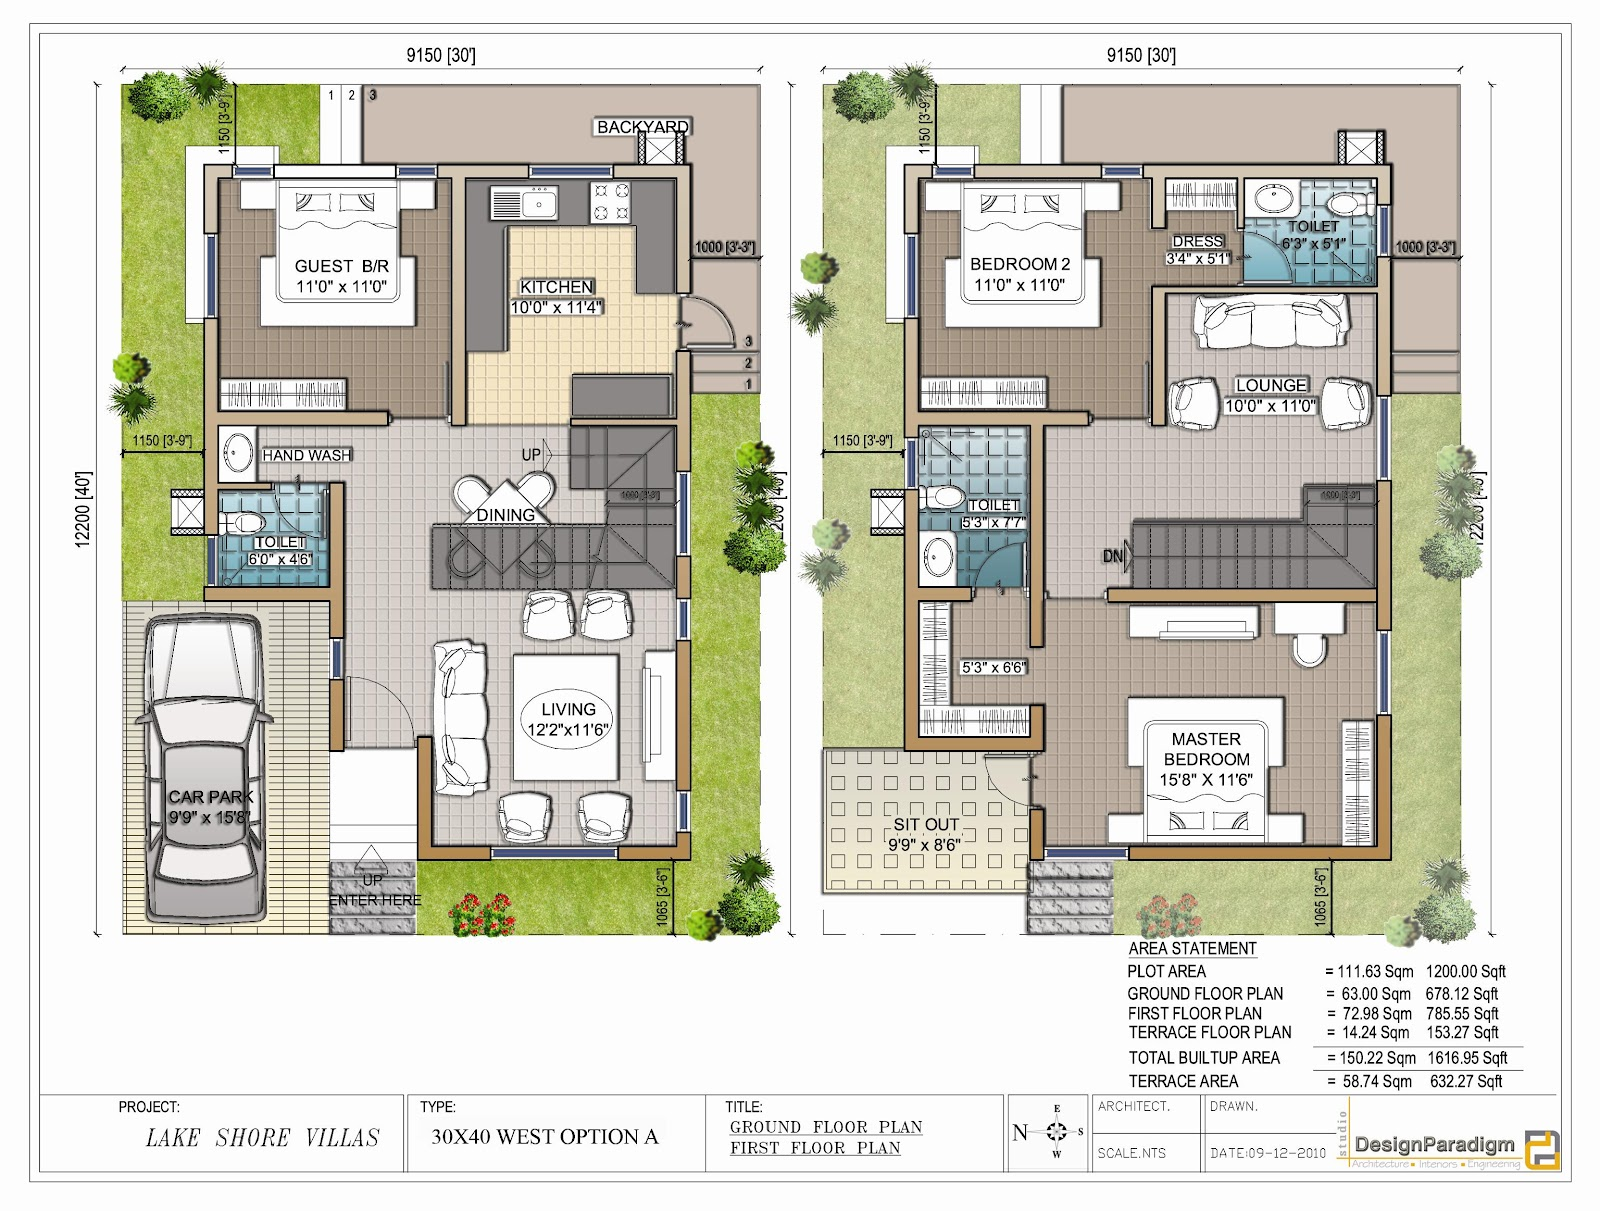 House plans and design architectural house plans for for Architecture design for 30x40 house